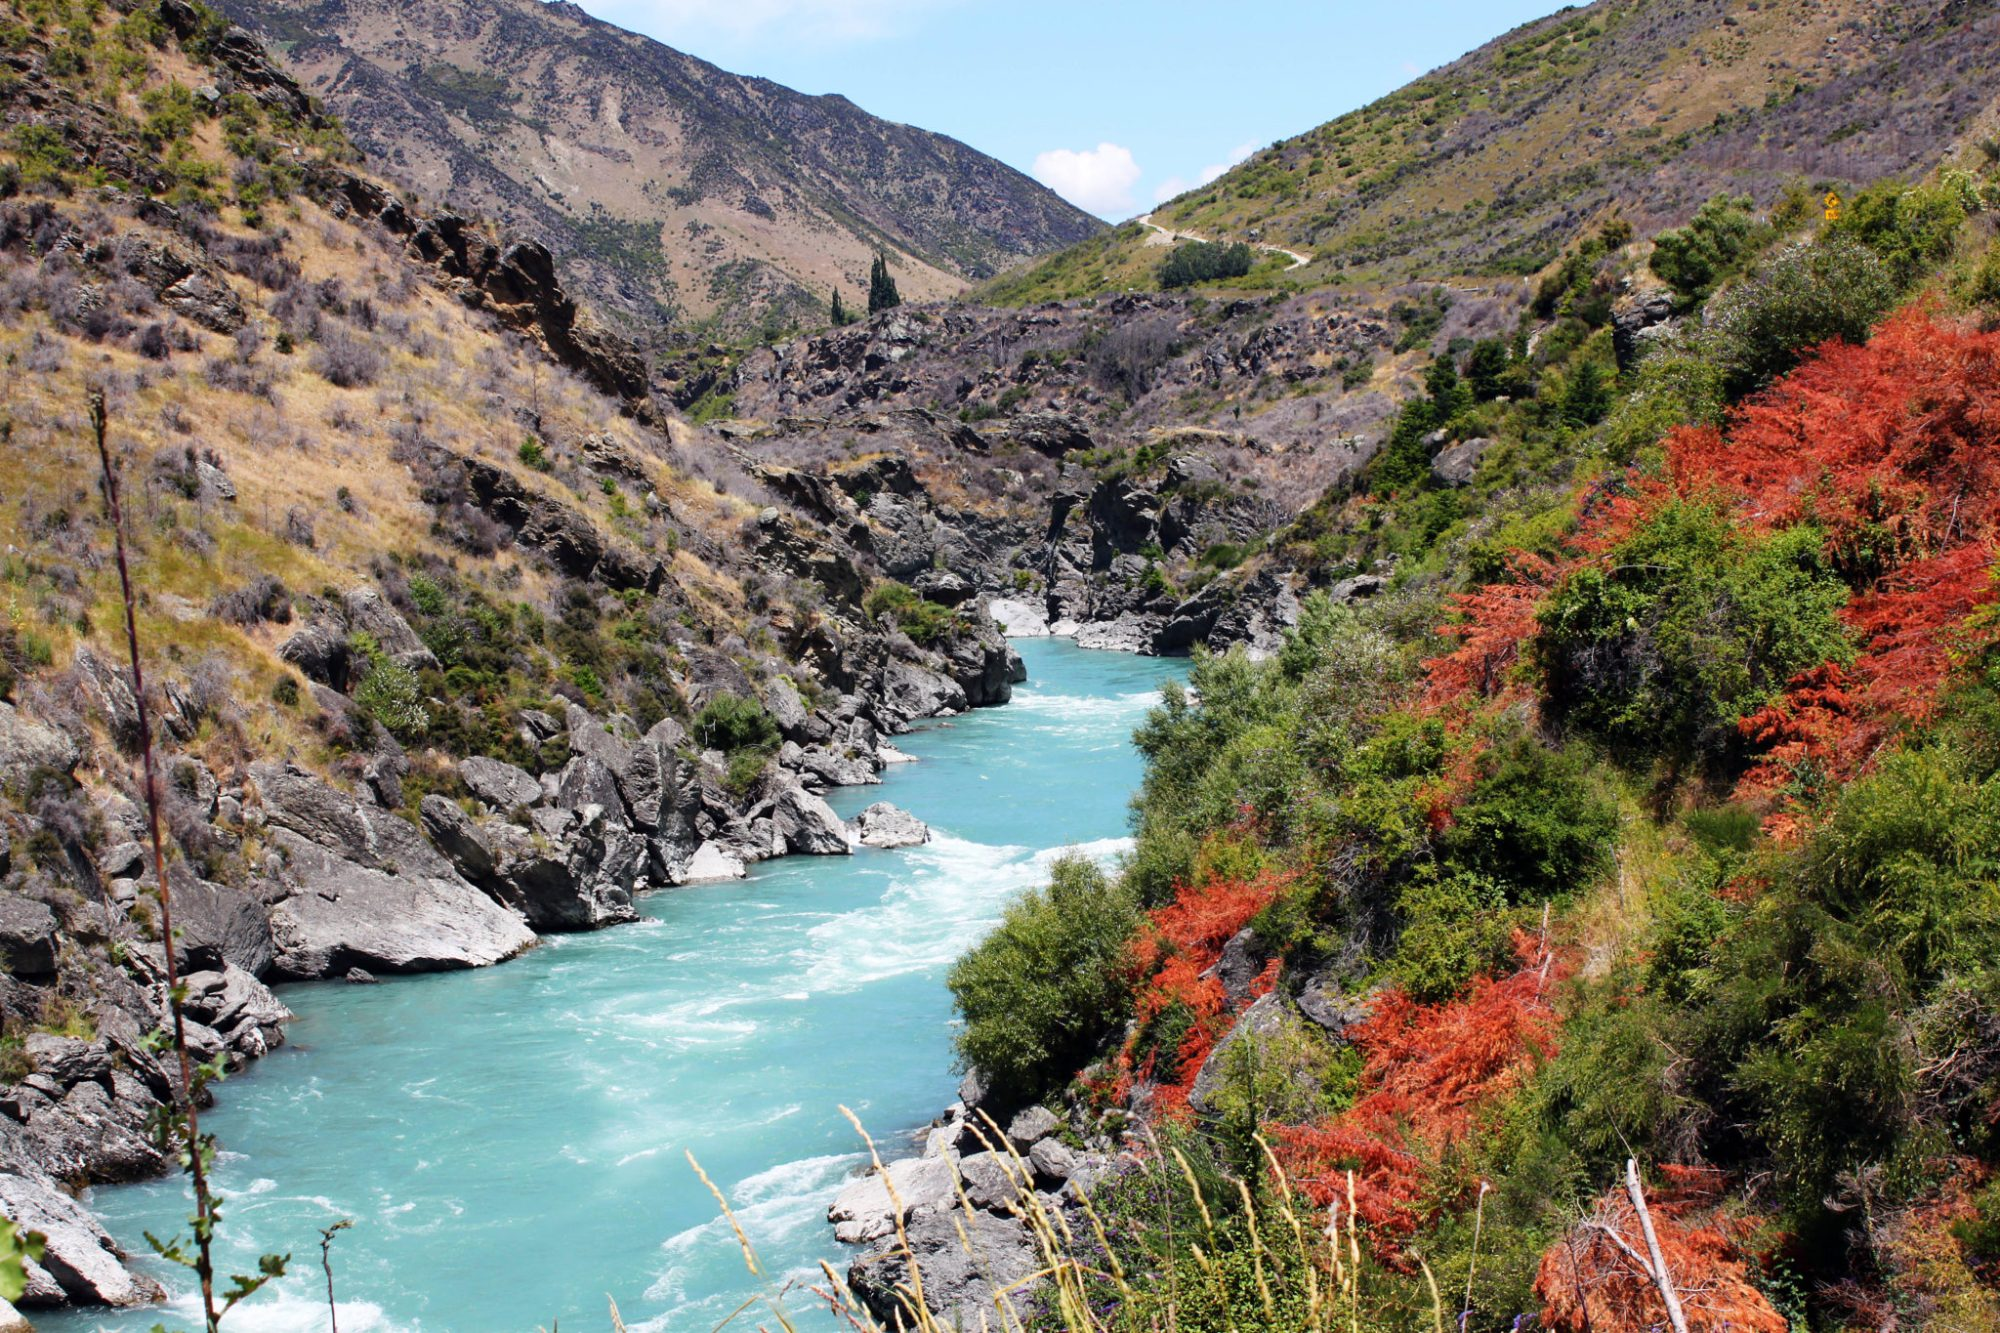 This New Zealand drive along the Kawarua river is stunning   8 Unforgettable things to do in Queenstown New Zealand #newzealand #queenstown #simplywander